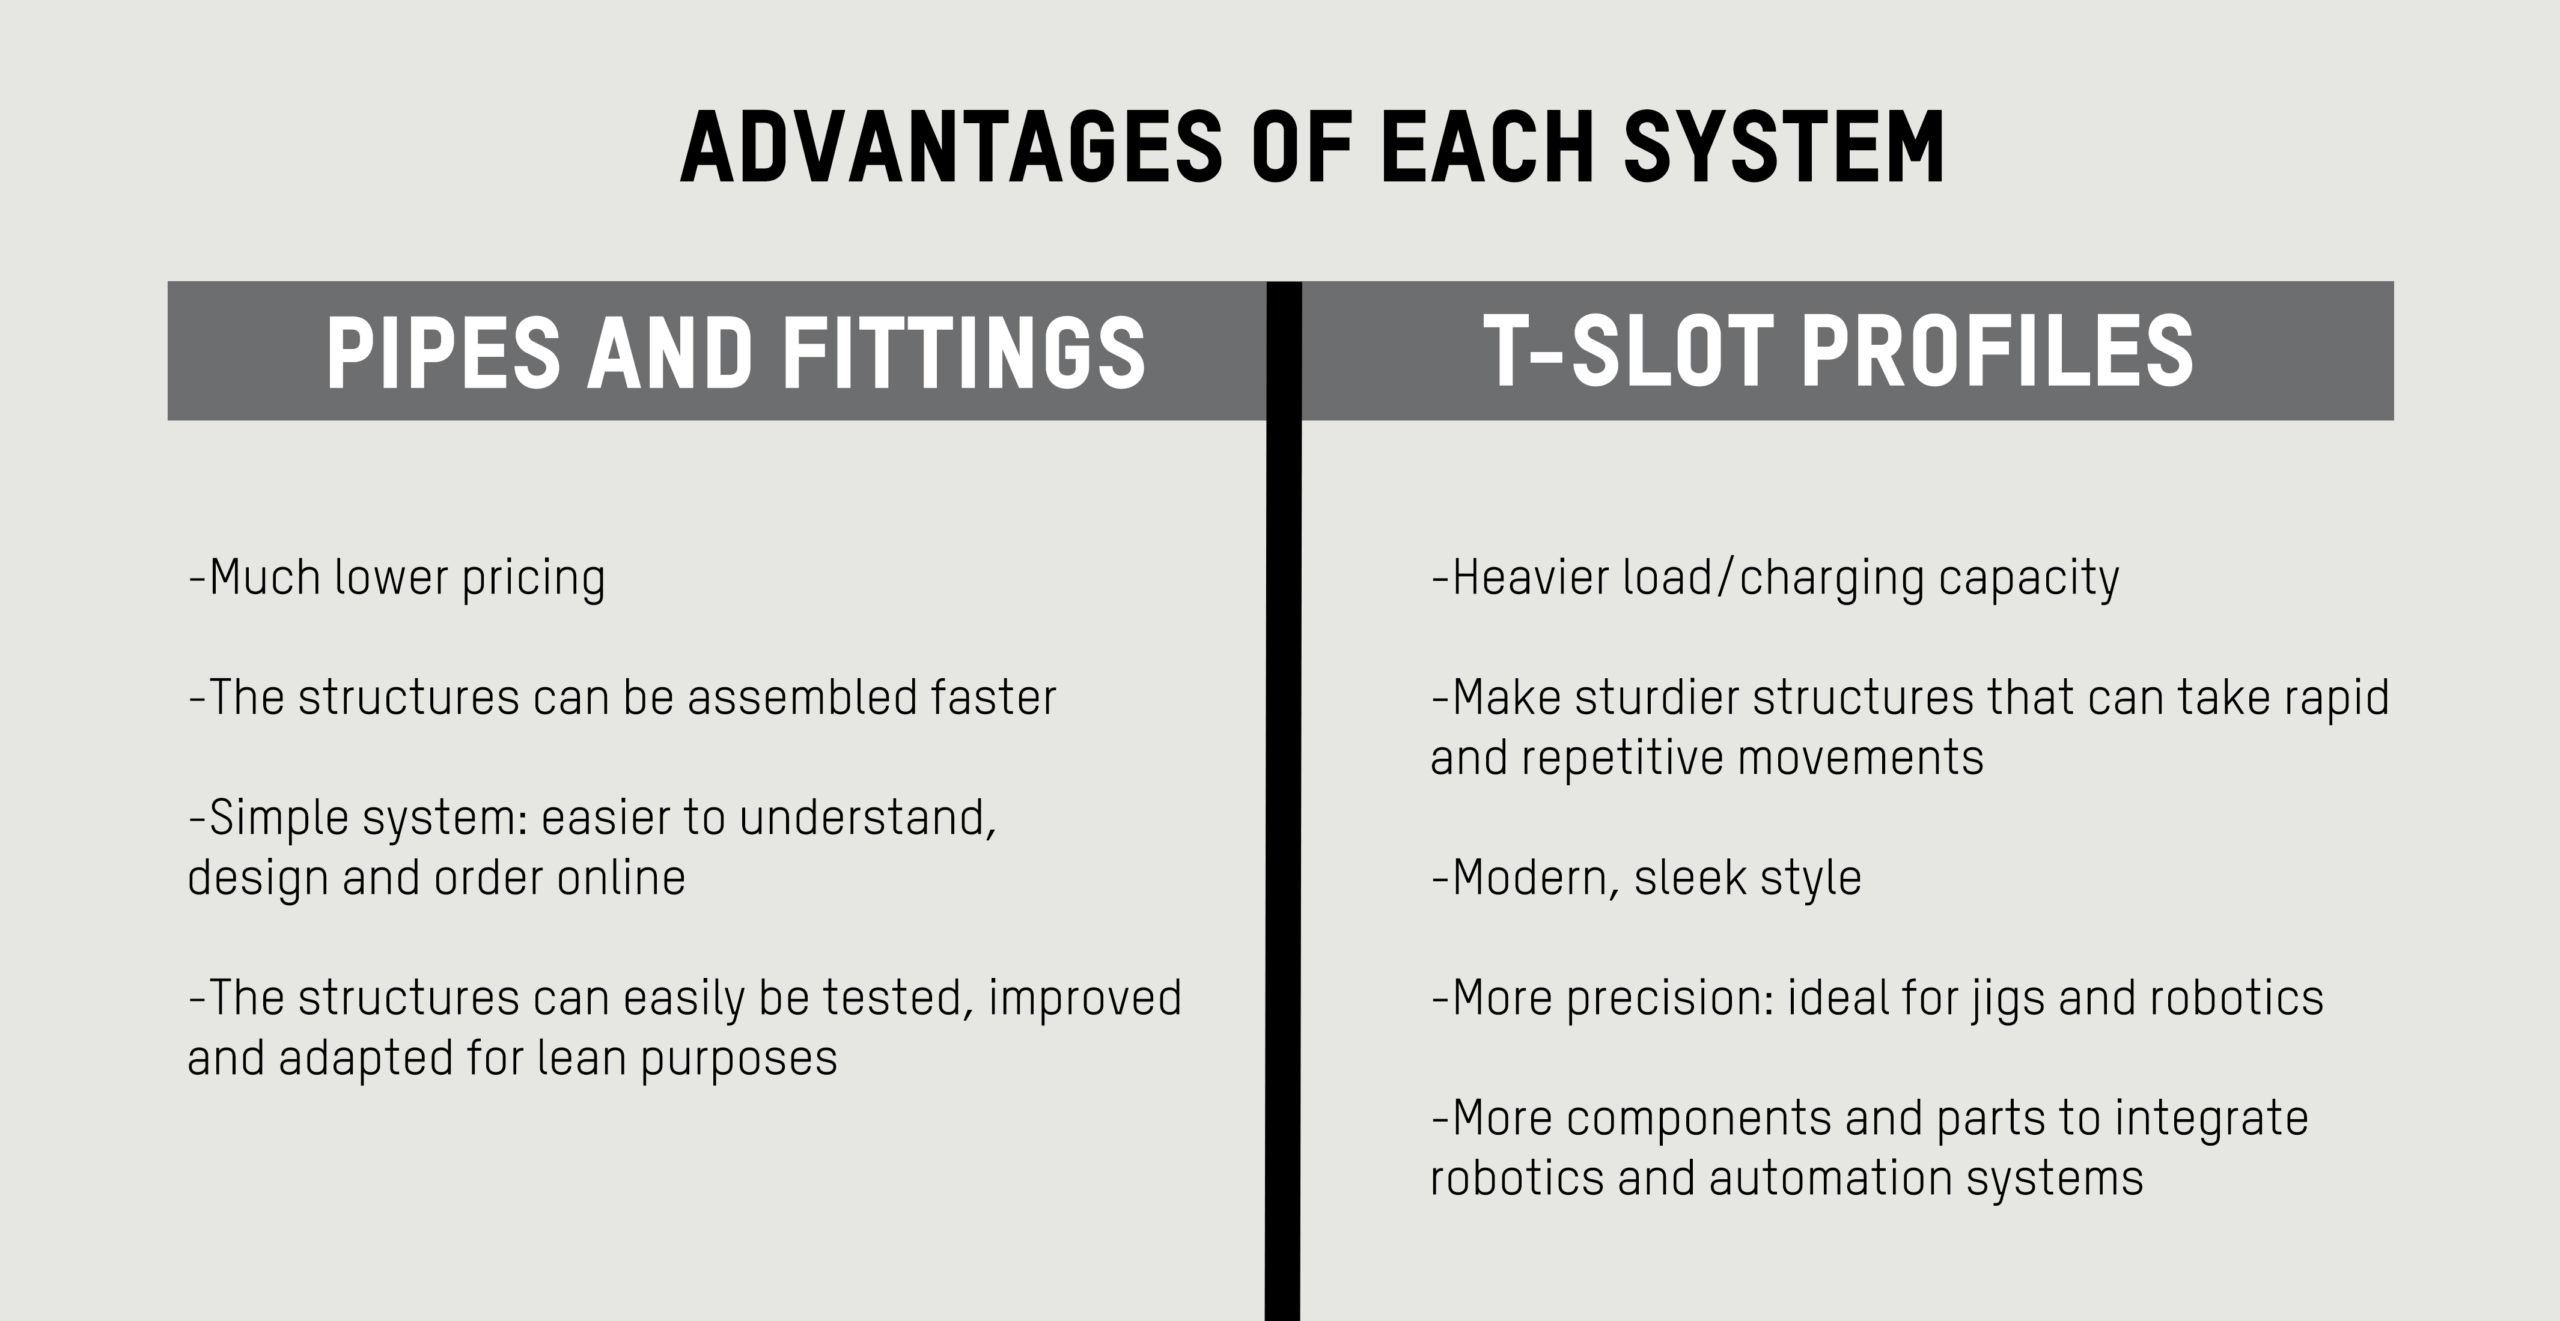 Advantages of each system